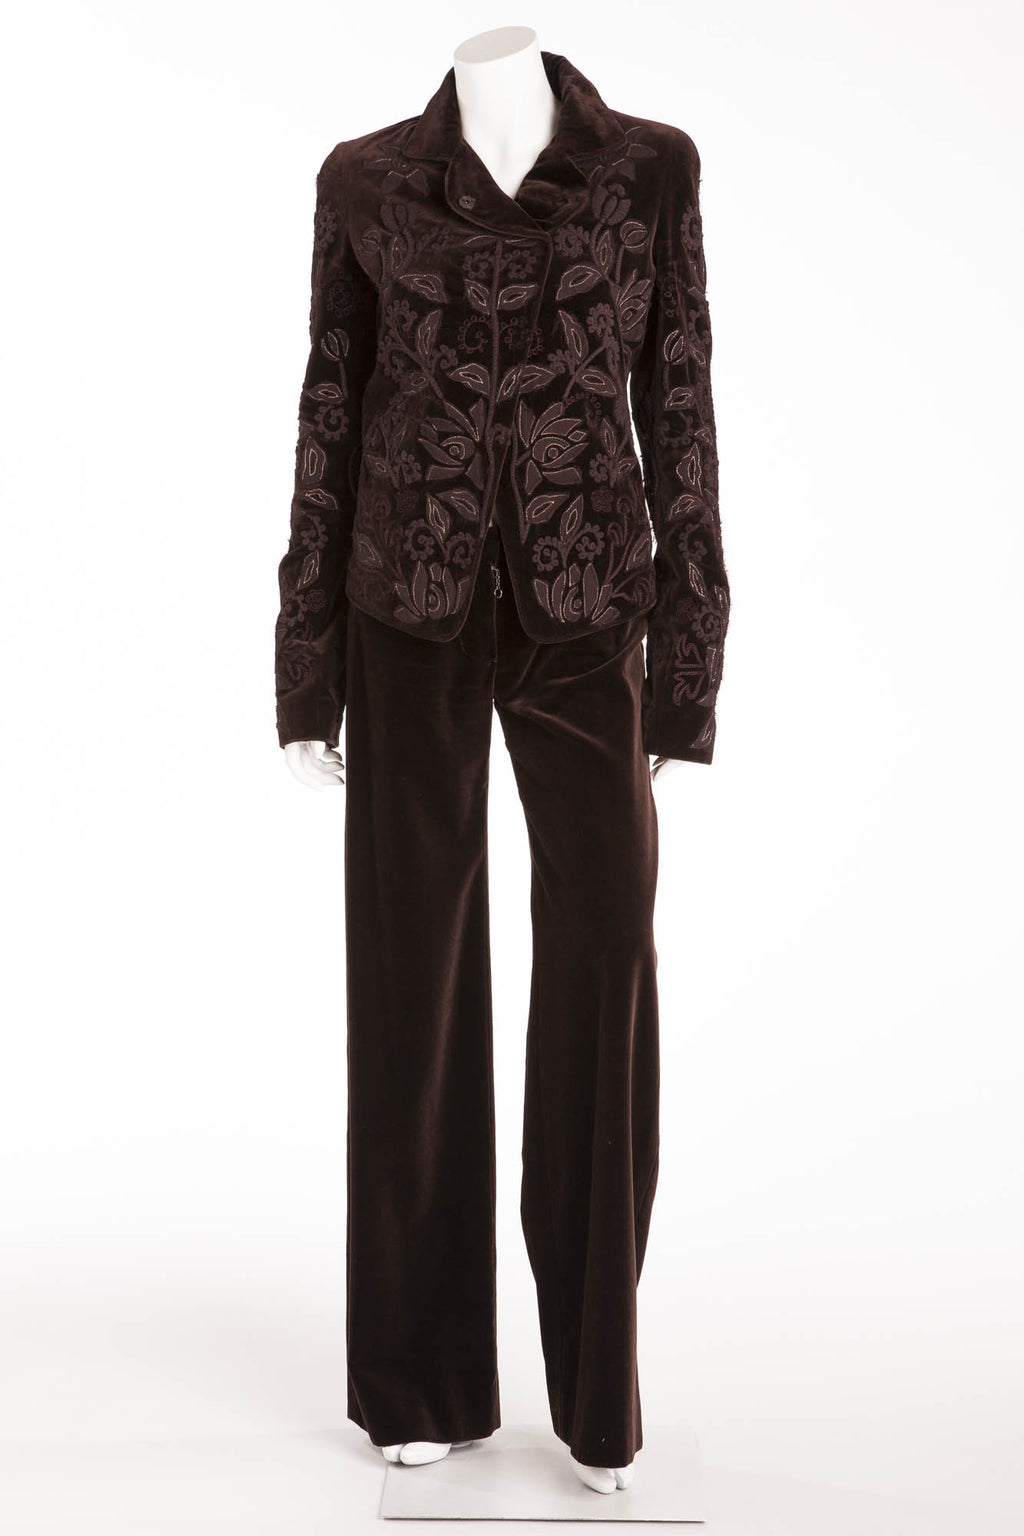 Chloe - As Seen on the 2002 Runway Collection - Brown Velvet Jacket and Pants - FR 38